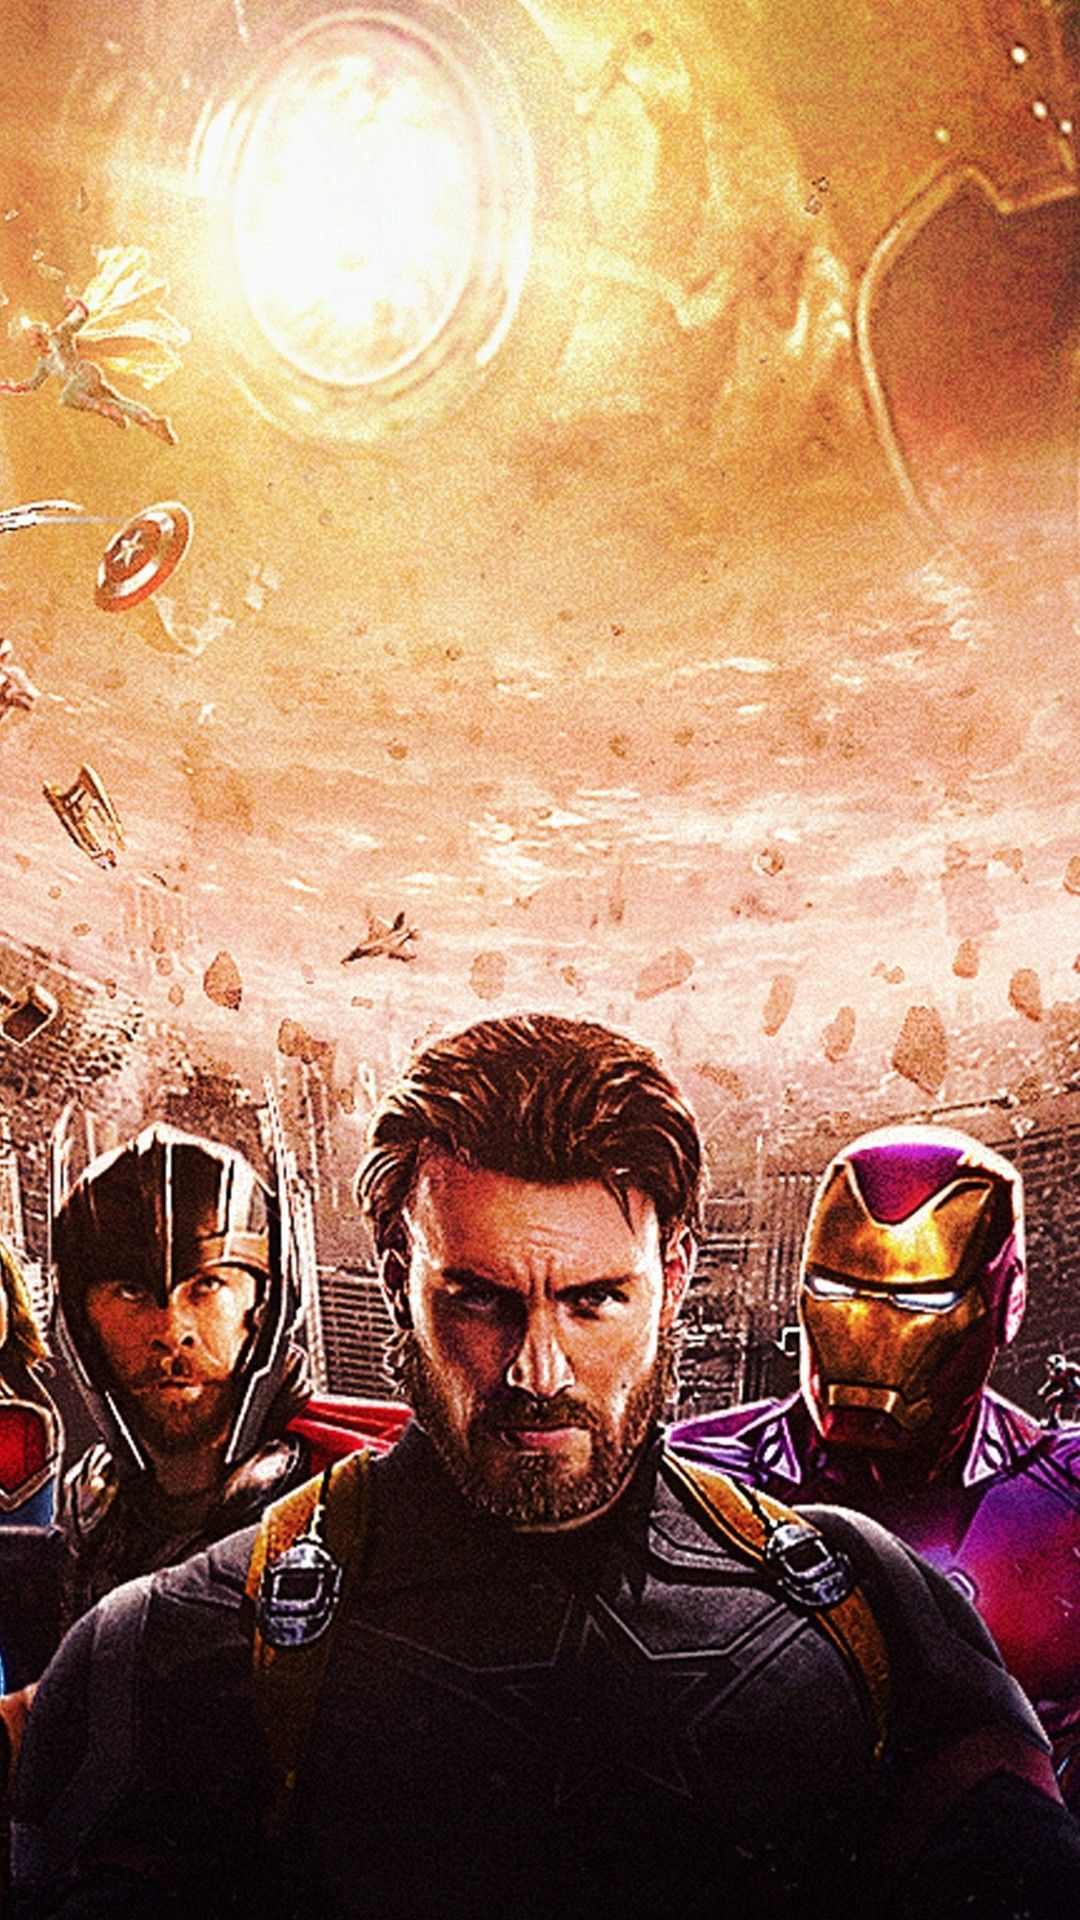 Avengers 3 Wallpaper For Iphone Witch Wallpaper Superhero Wallpaper Avengers Wallpaper